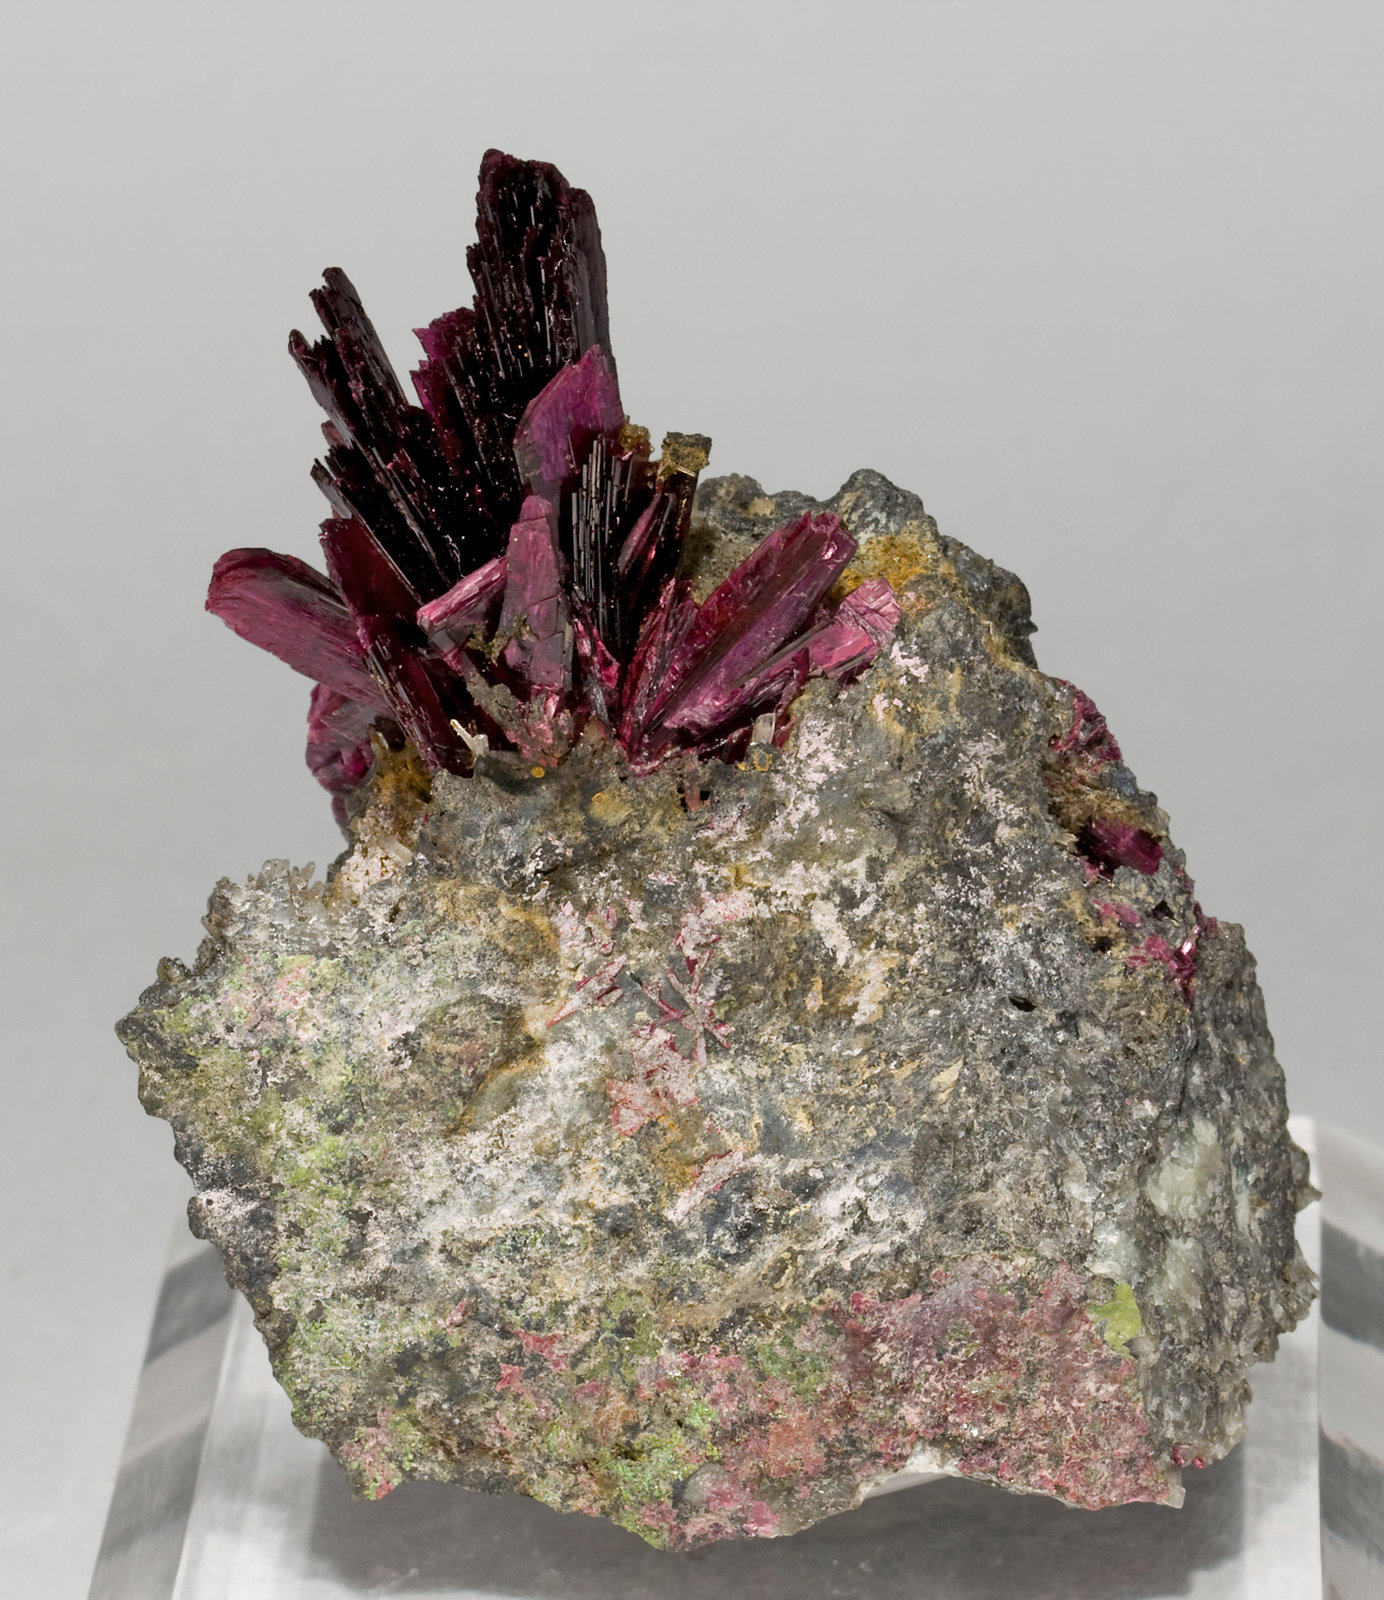 specimens/s_imagesT3/Erythrite-EX47T3s.jpg